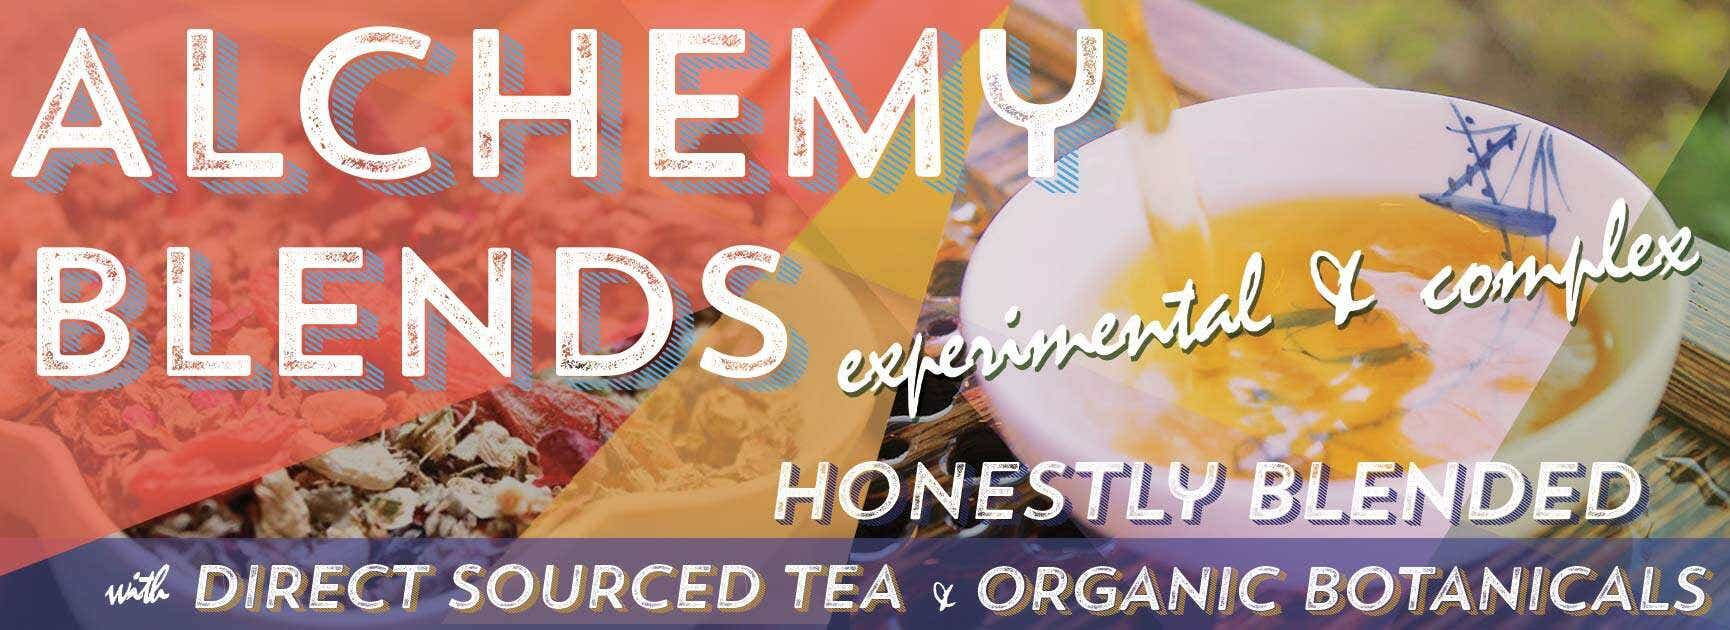 Shop Alchemy Blends: experimental and complex. Honestly blended with direct sourced tea and organic botanicals.